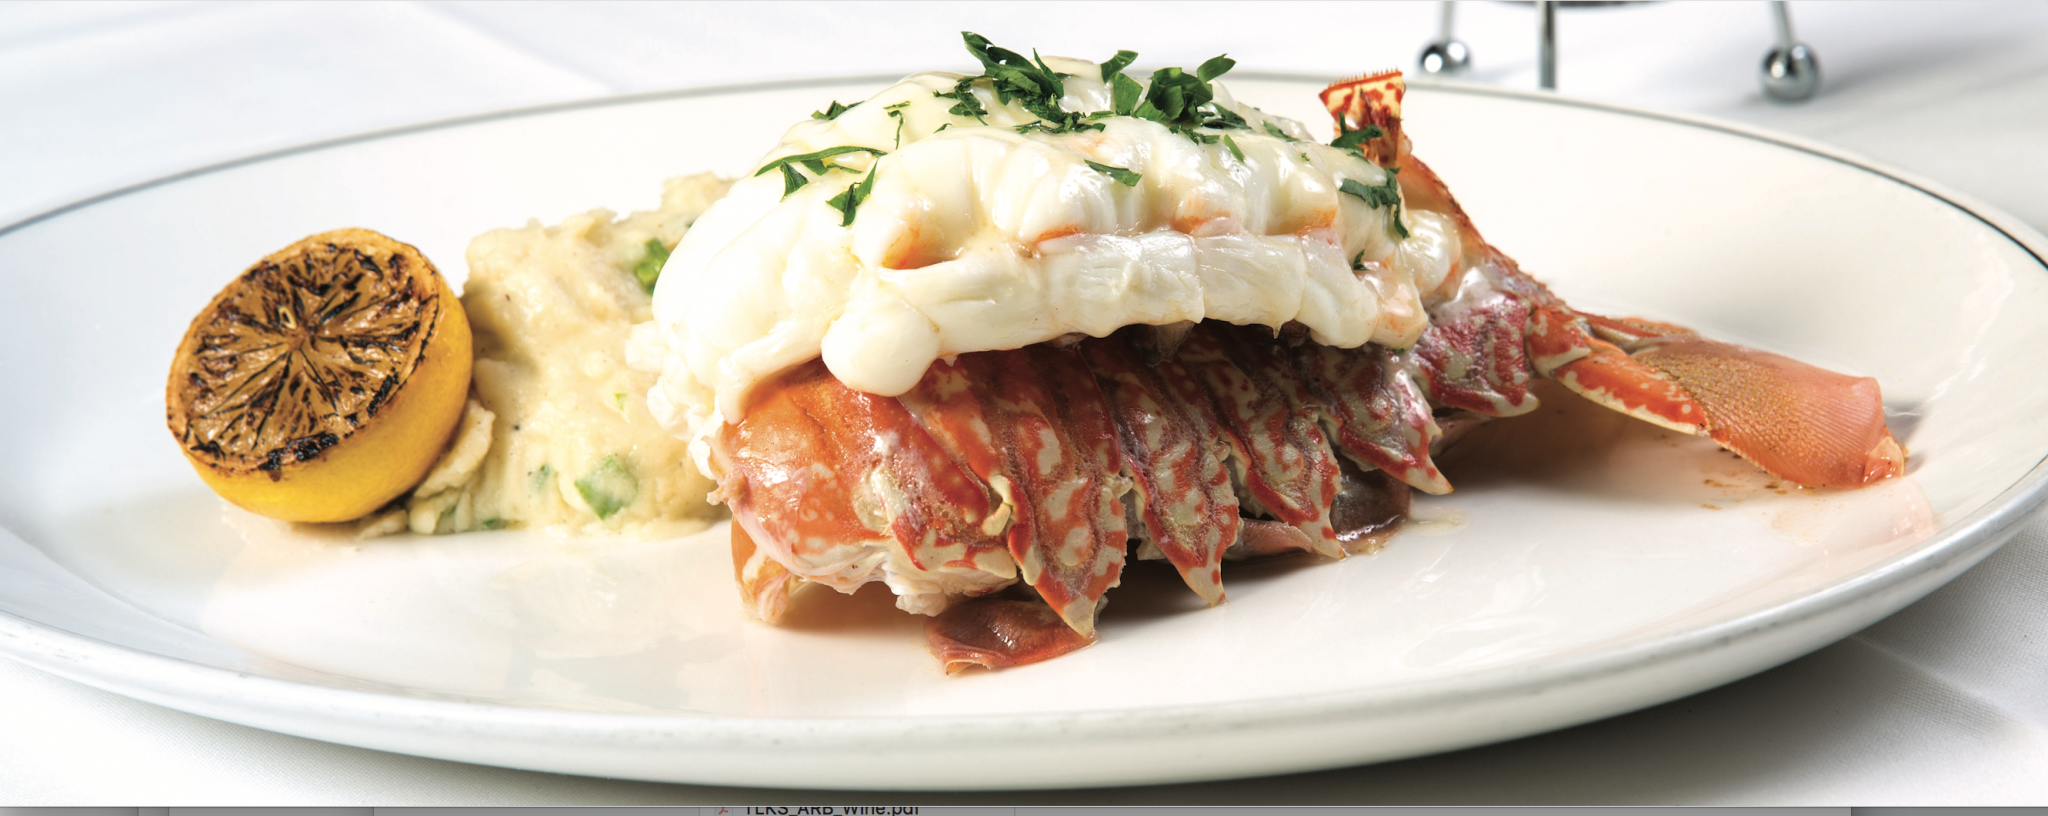 picture of SOUTH AFRICAN LOBSTER TAIL renowned worldwide for its sweetness and served with parmesan mashed potatoes. Garnished with a lemon.